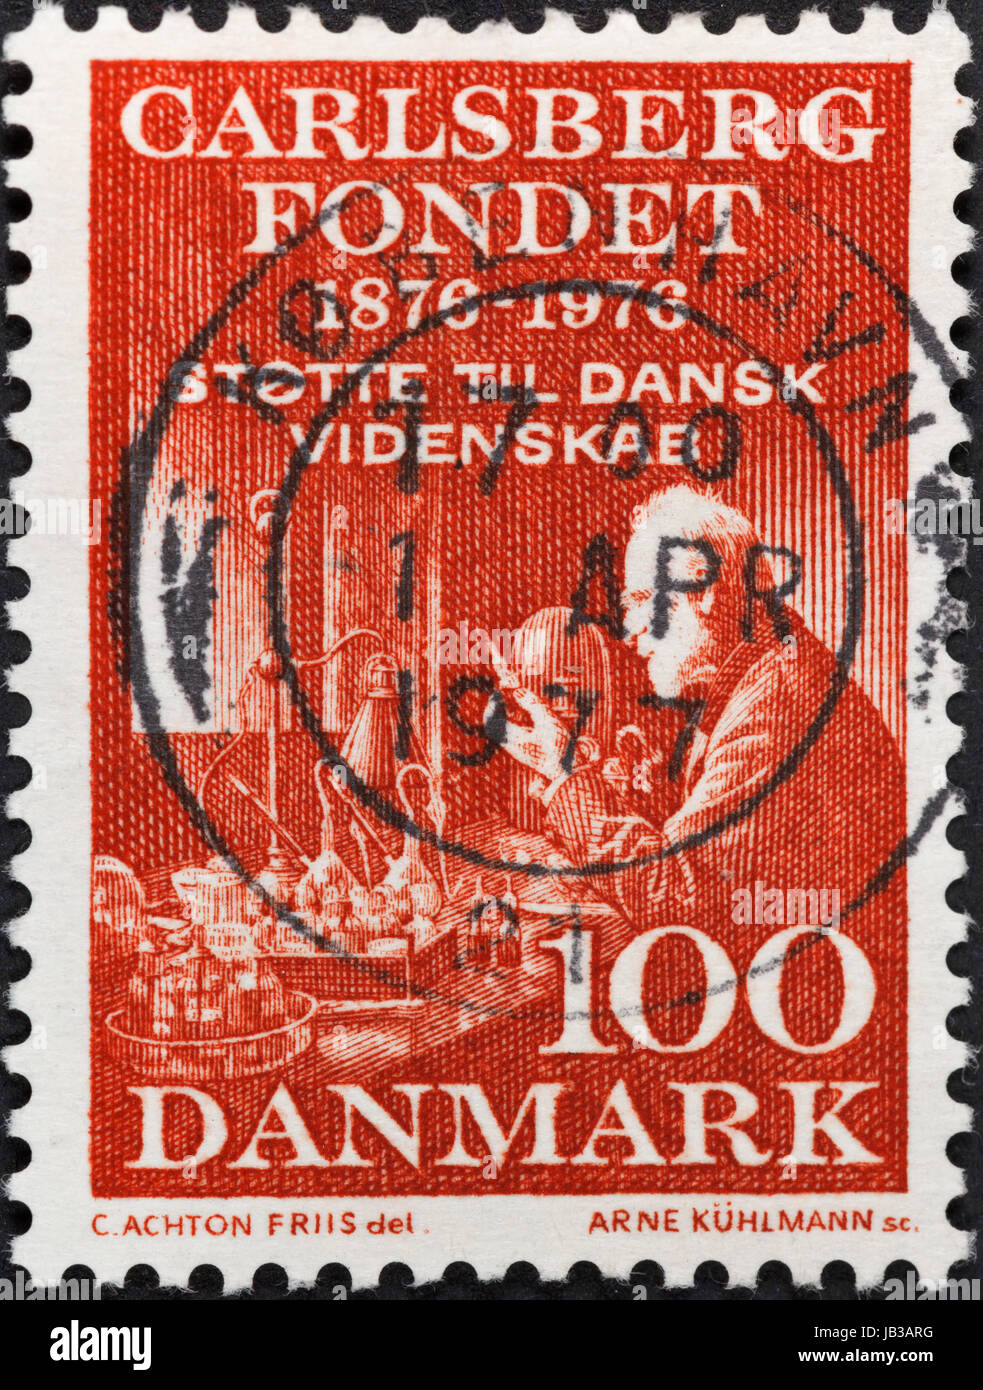 DENMARK - CIRCA 1976: A postage stamp printed in the Denmark shows Carlsberg Laboratory funded by Carlsberg foundation, - Stock Image